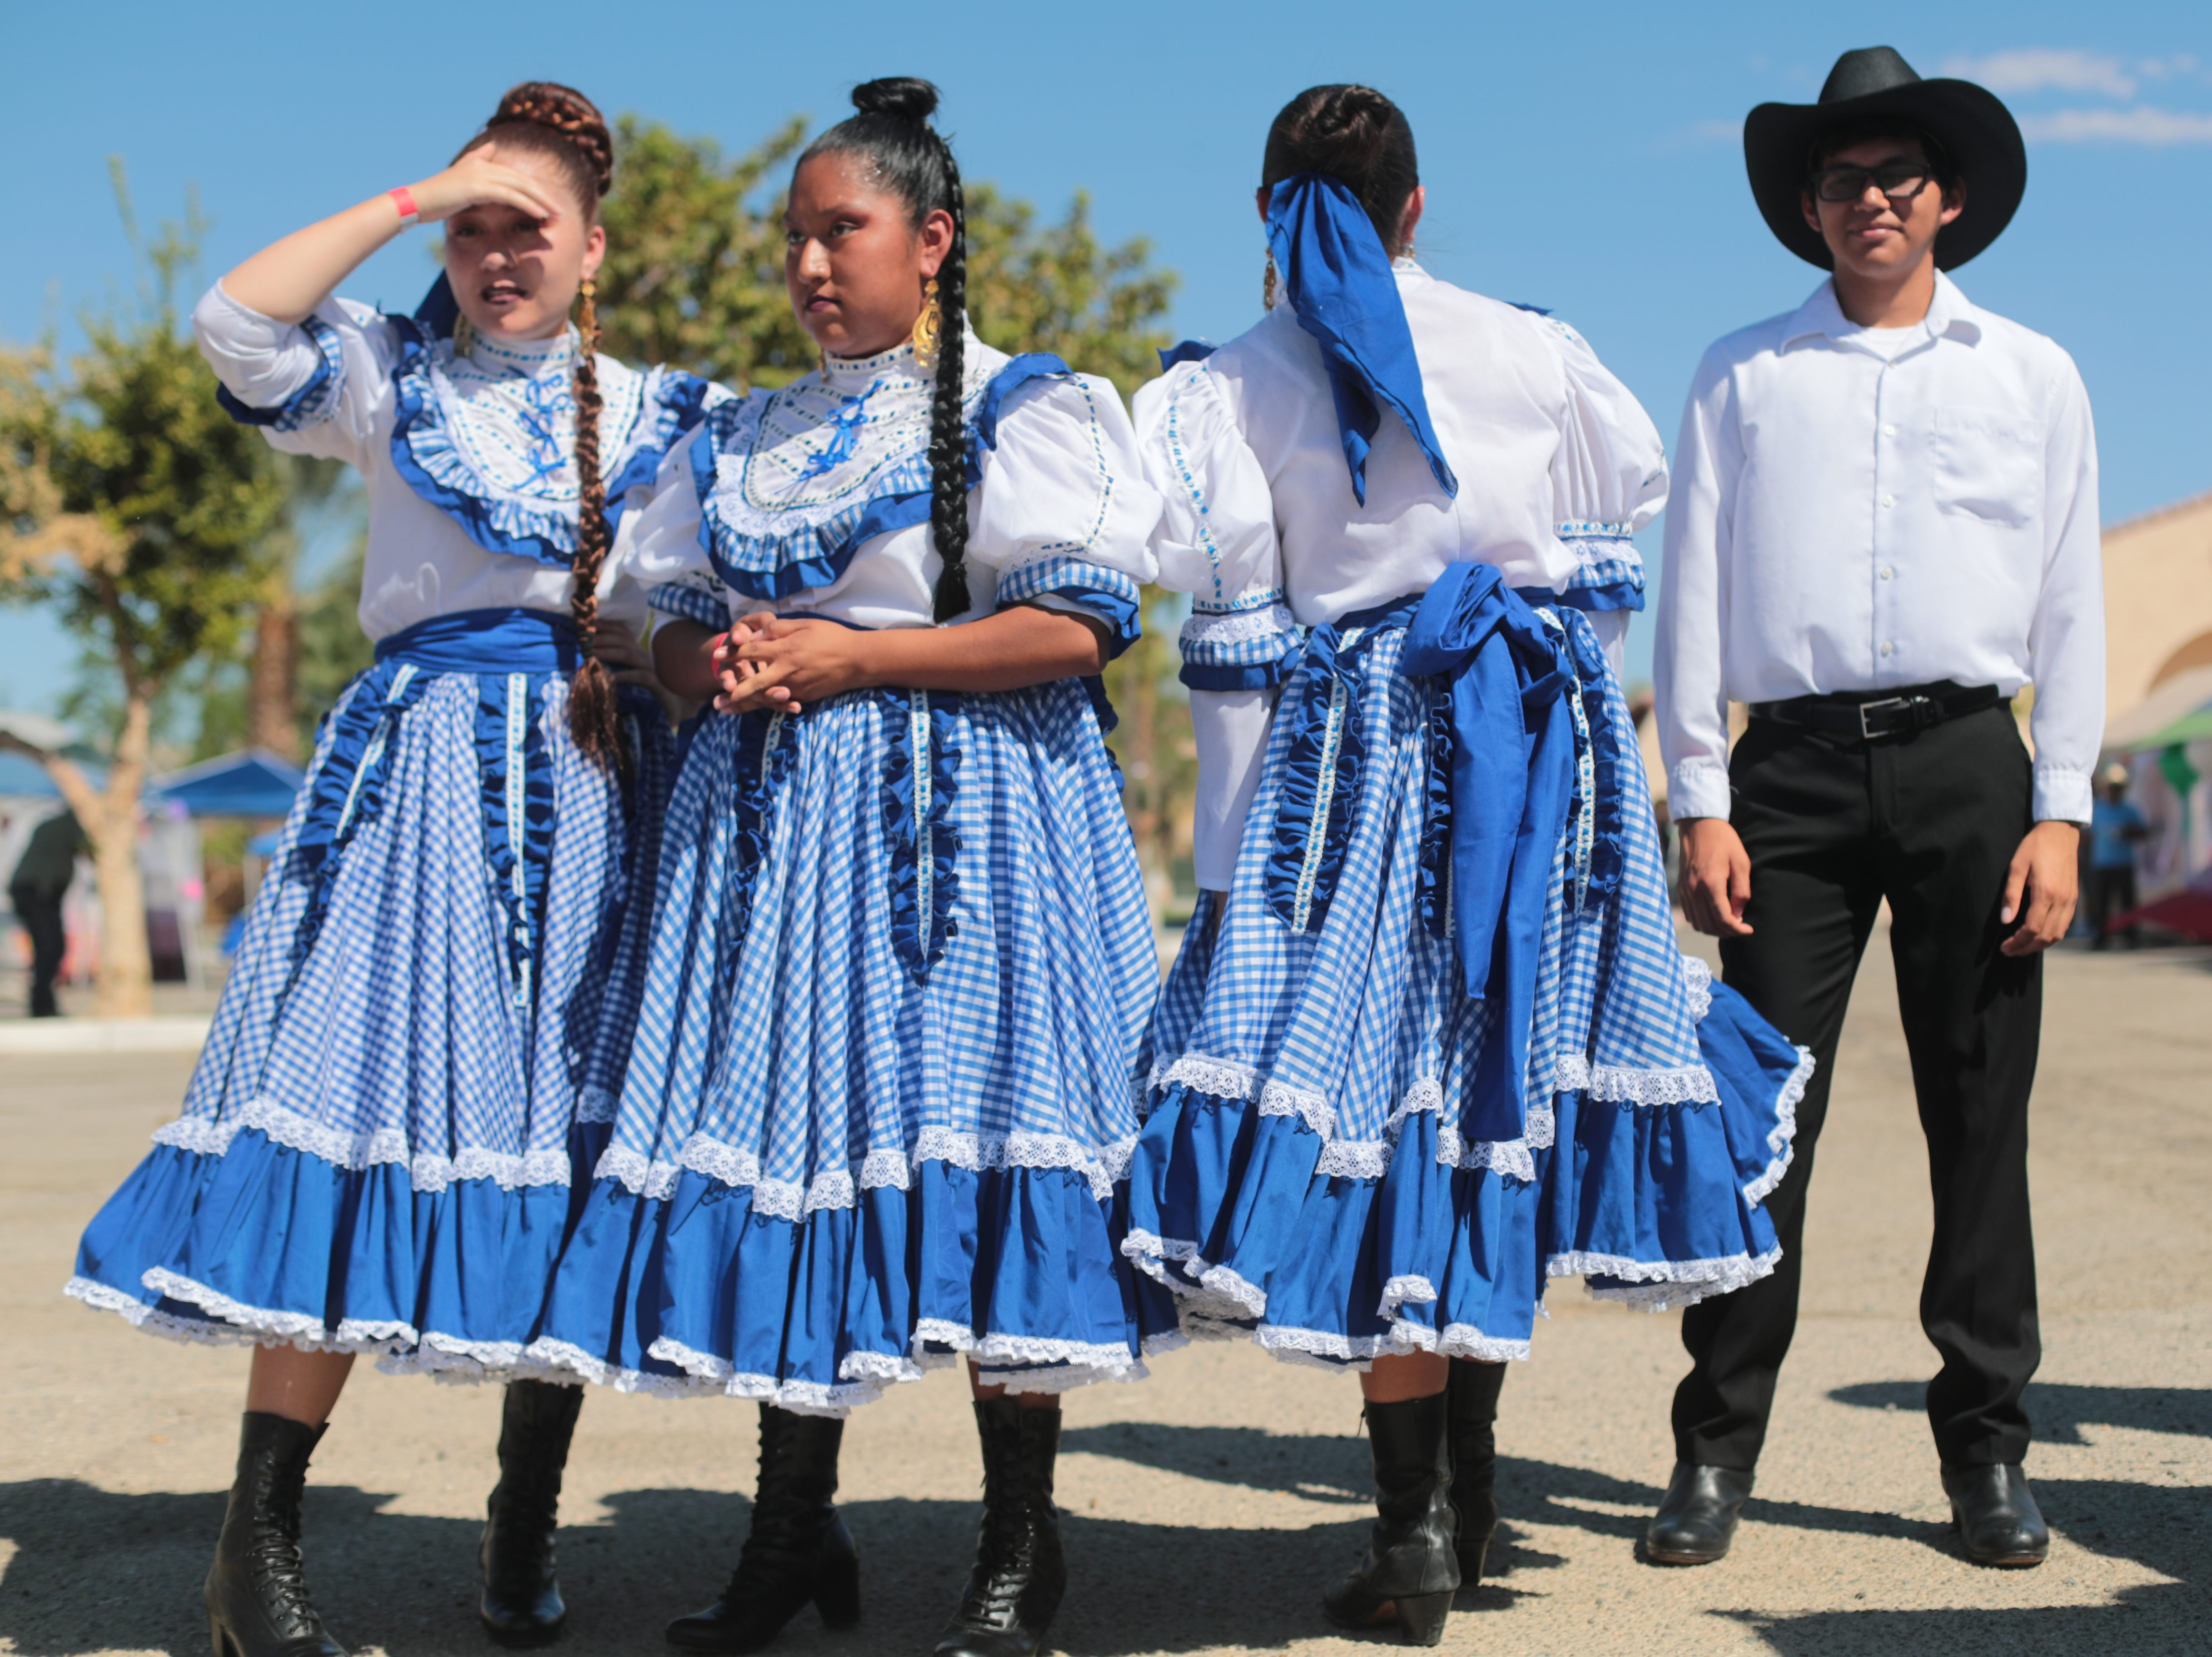 Folkolorico dancers from Desert Mirage High School wait to perform at the Mexican independence day celebration at Our Virgin of Guadalupe Church in Mecca on Saturday, September 15, 2018.